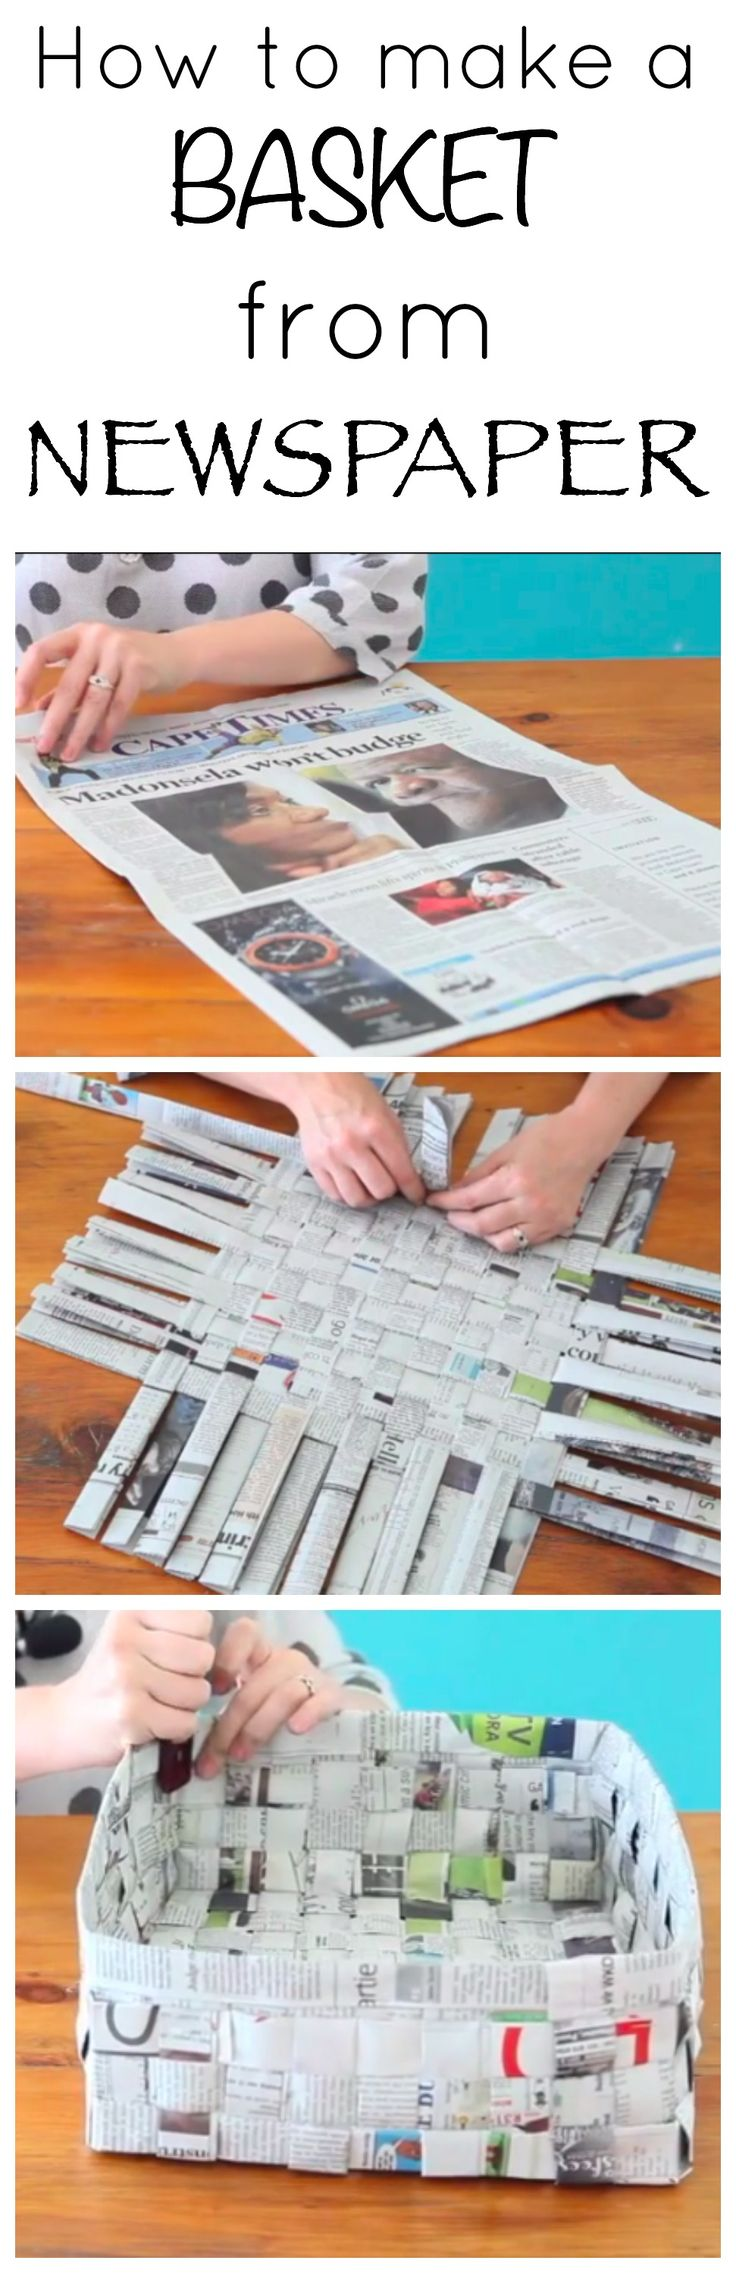 How to make a basket from newspaper! Super fun activity for kids…